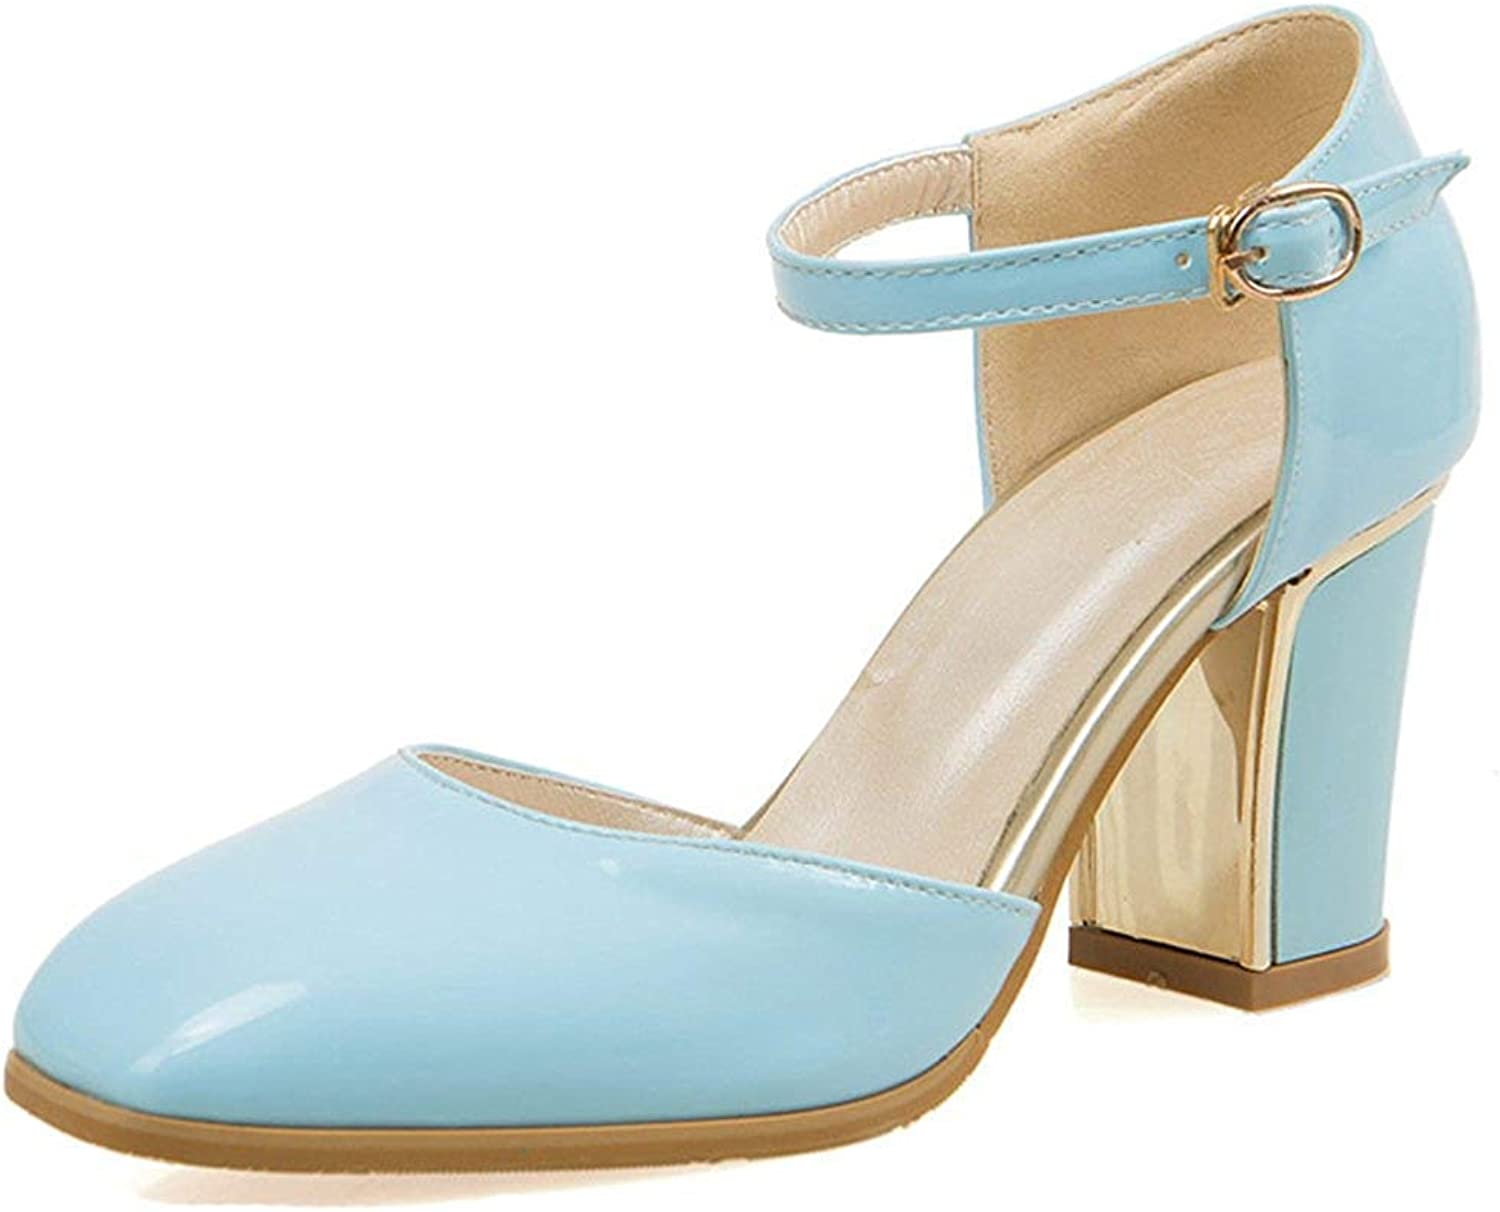 Unm Women's Closed Toe Sandals with Ankle Strap - Buckled Burnished Chunky - D'Orsay High Heels